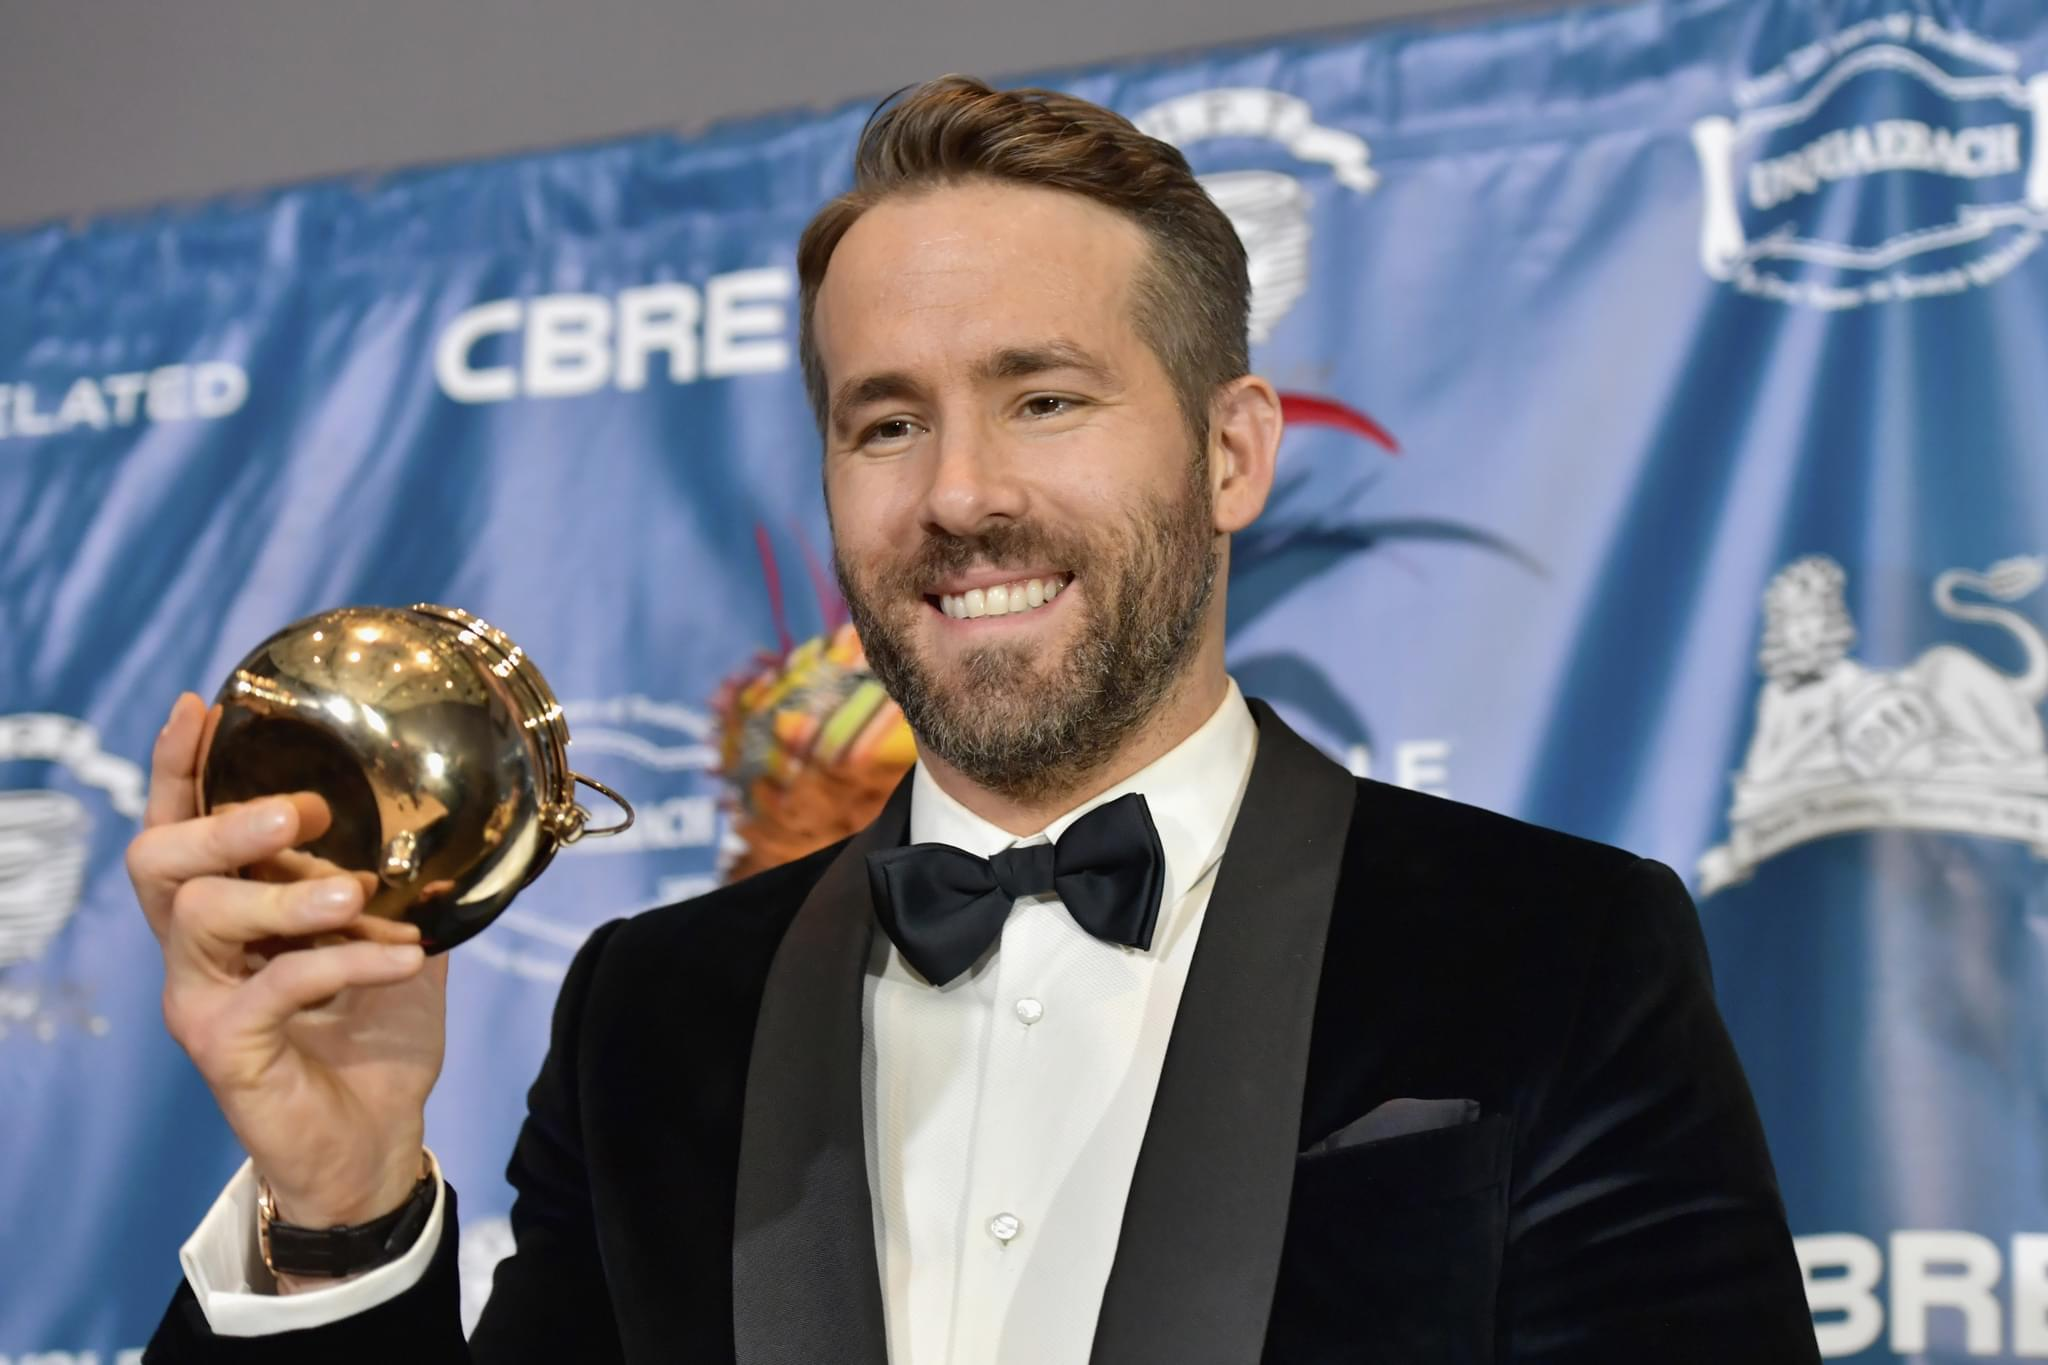 RYAN REYNOLDS is Launching a New Program to Ensure Diversity on his Movies